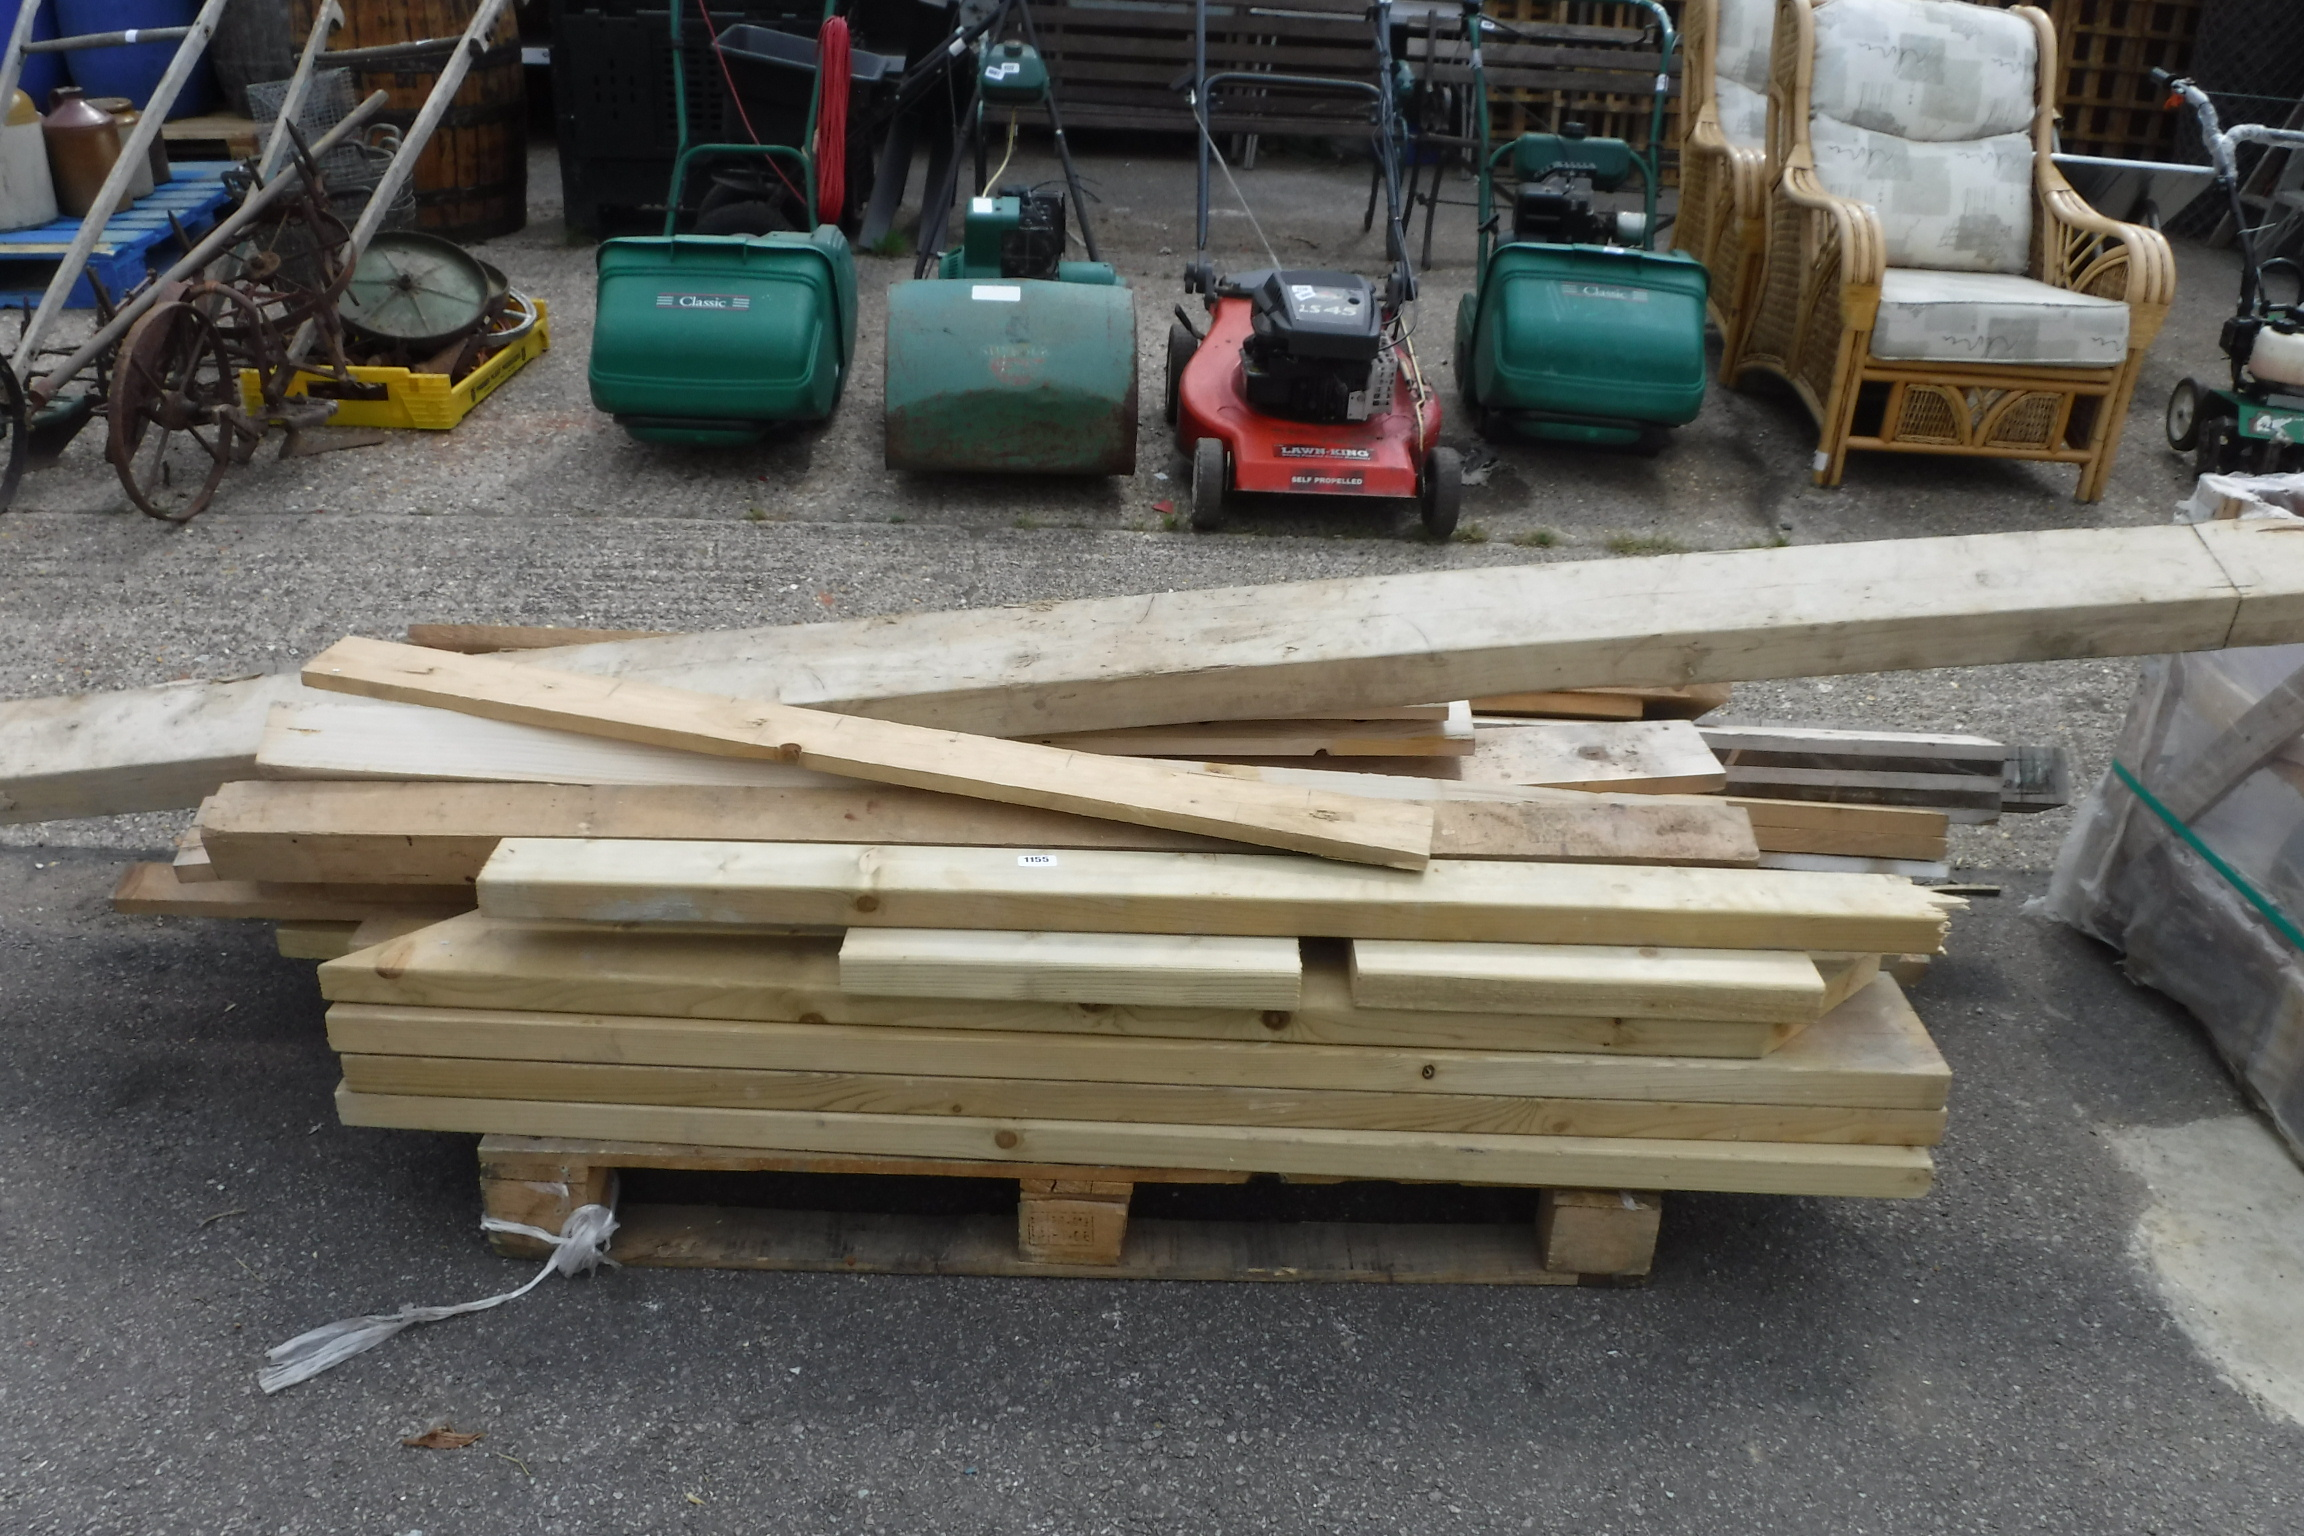 Pallet of assorted timber pieces